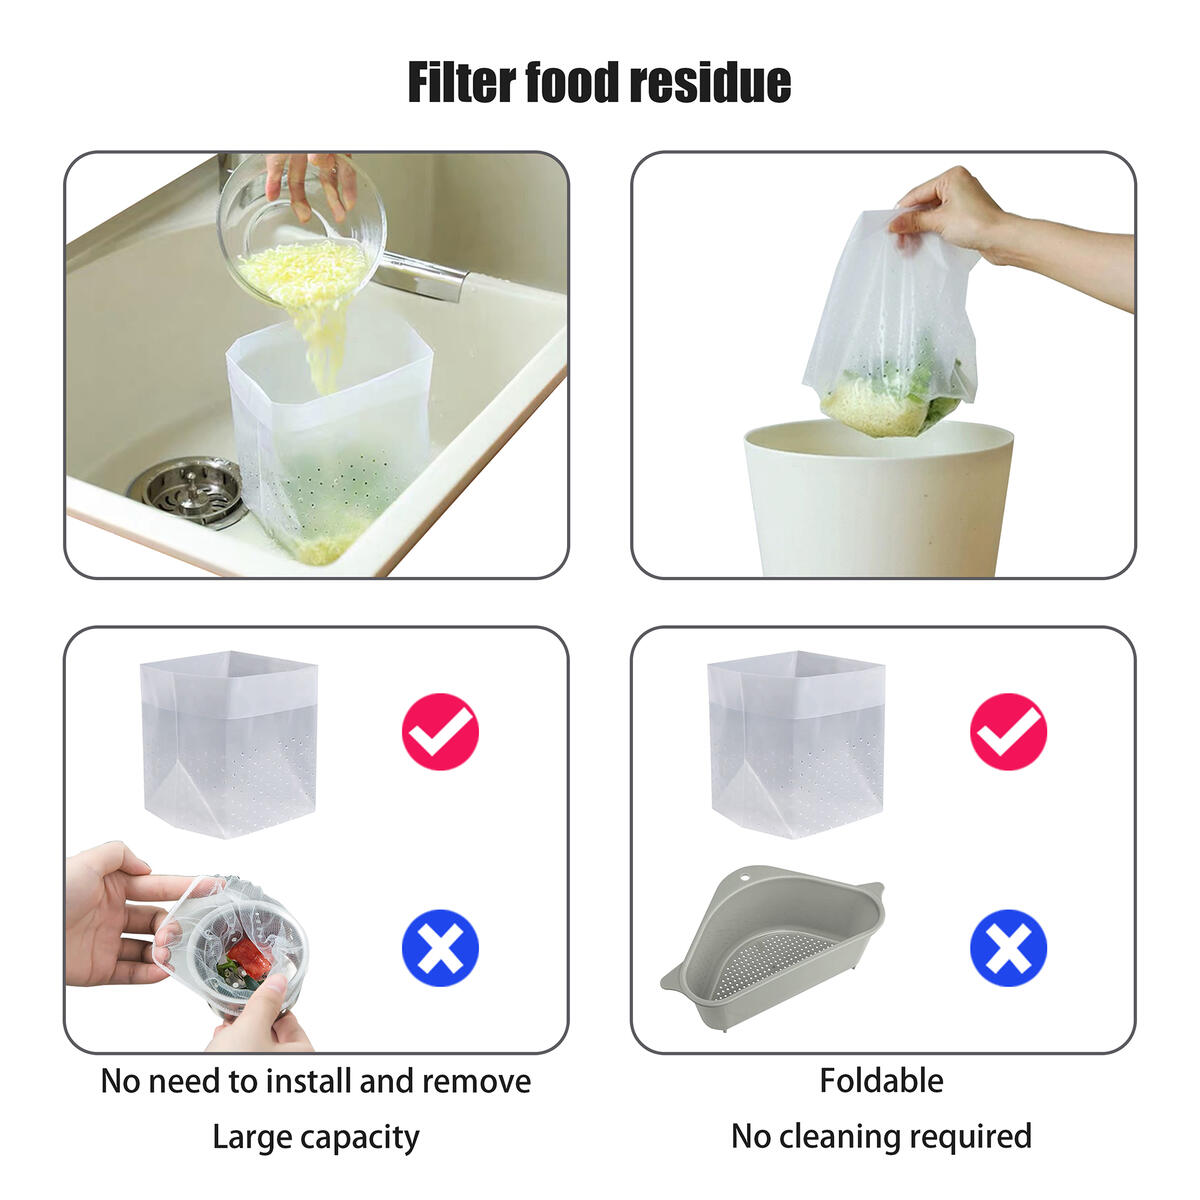 Family Simple Sink Strainer Bags,Disposable Kitchen Drain Drainer Bag,Foldable Stopper Filter,Reusable Plastic Rubbish Garbage Waste Residue Compost Bags,Vegetable Fruit Outdoor Washing Pouch (90Pcs)